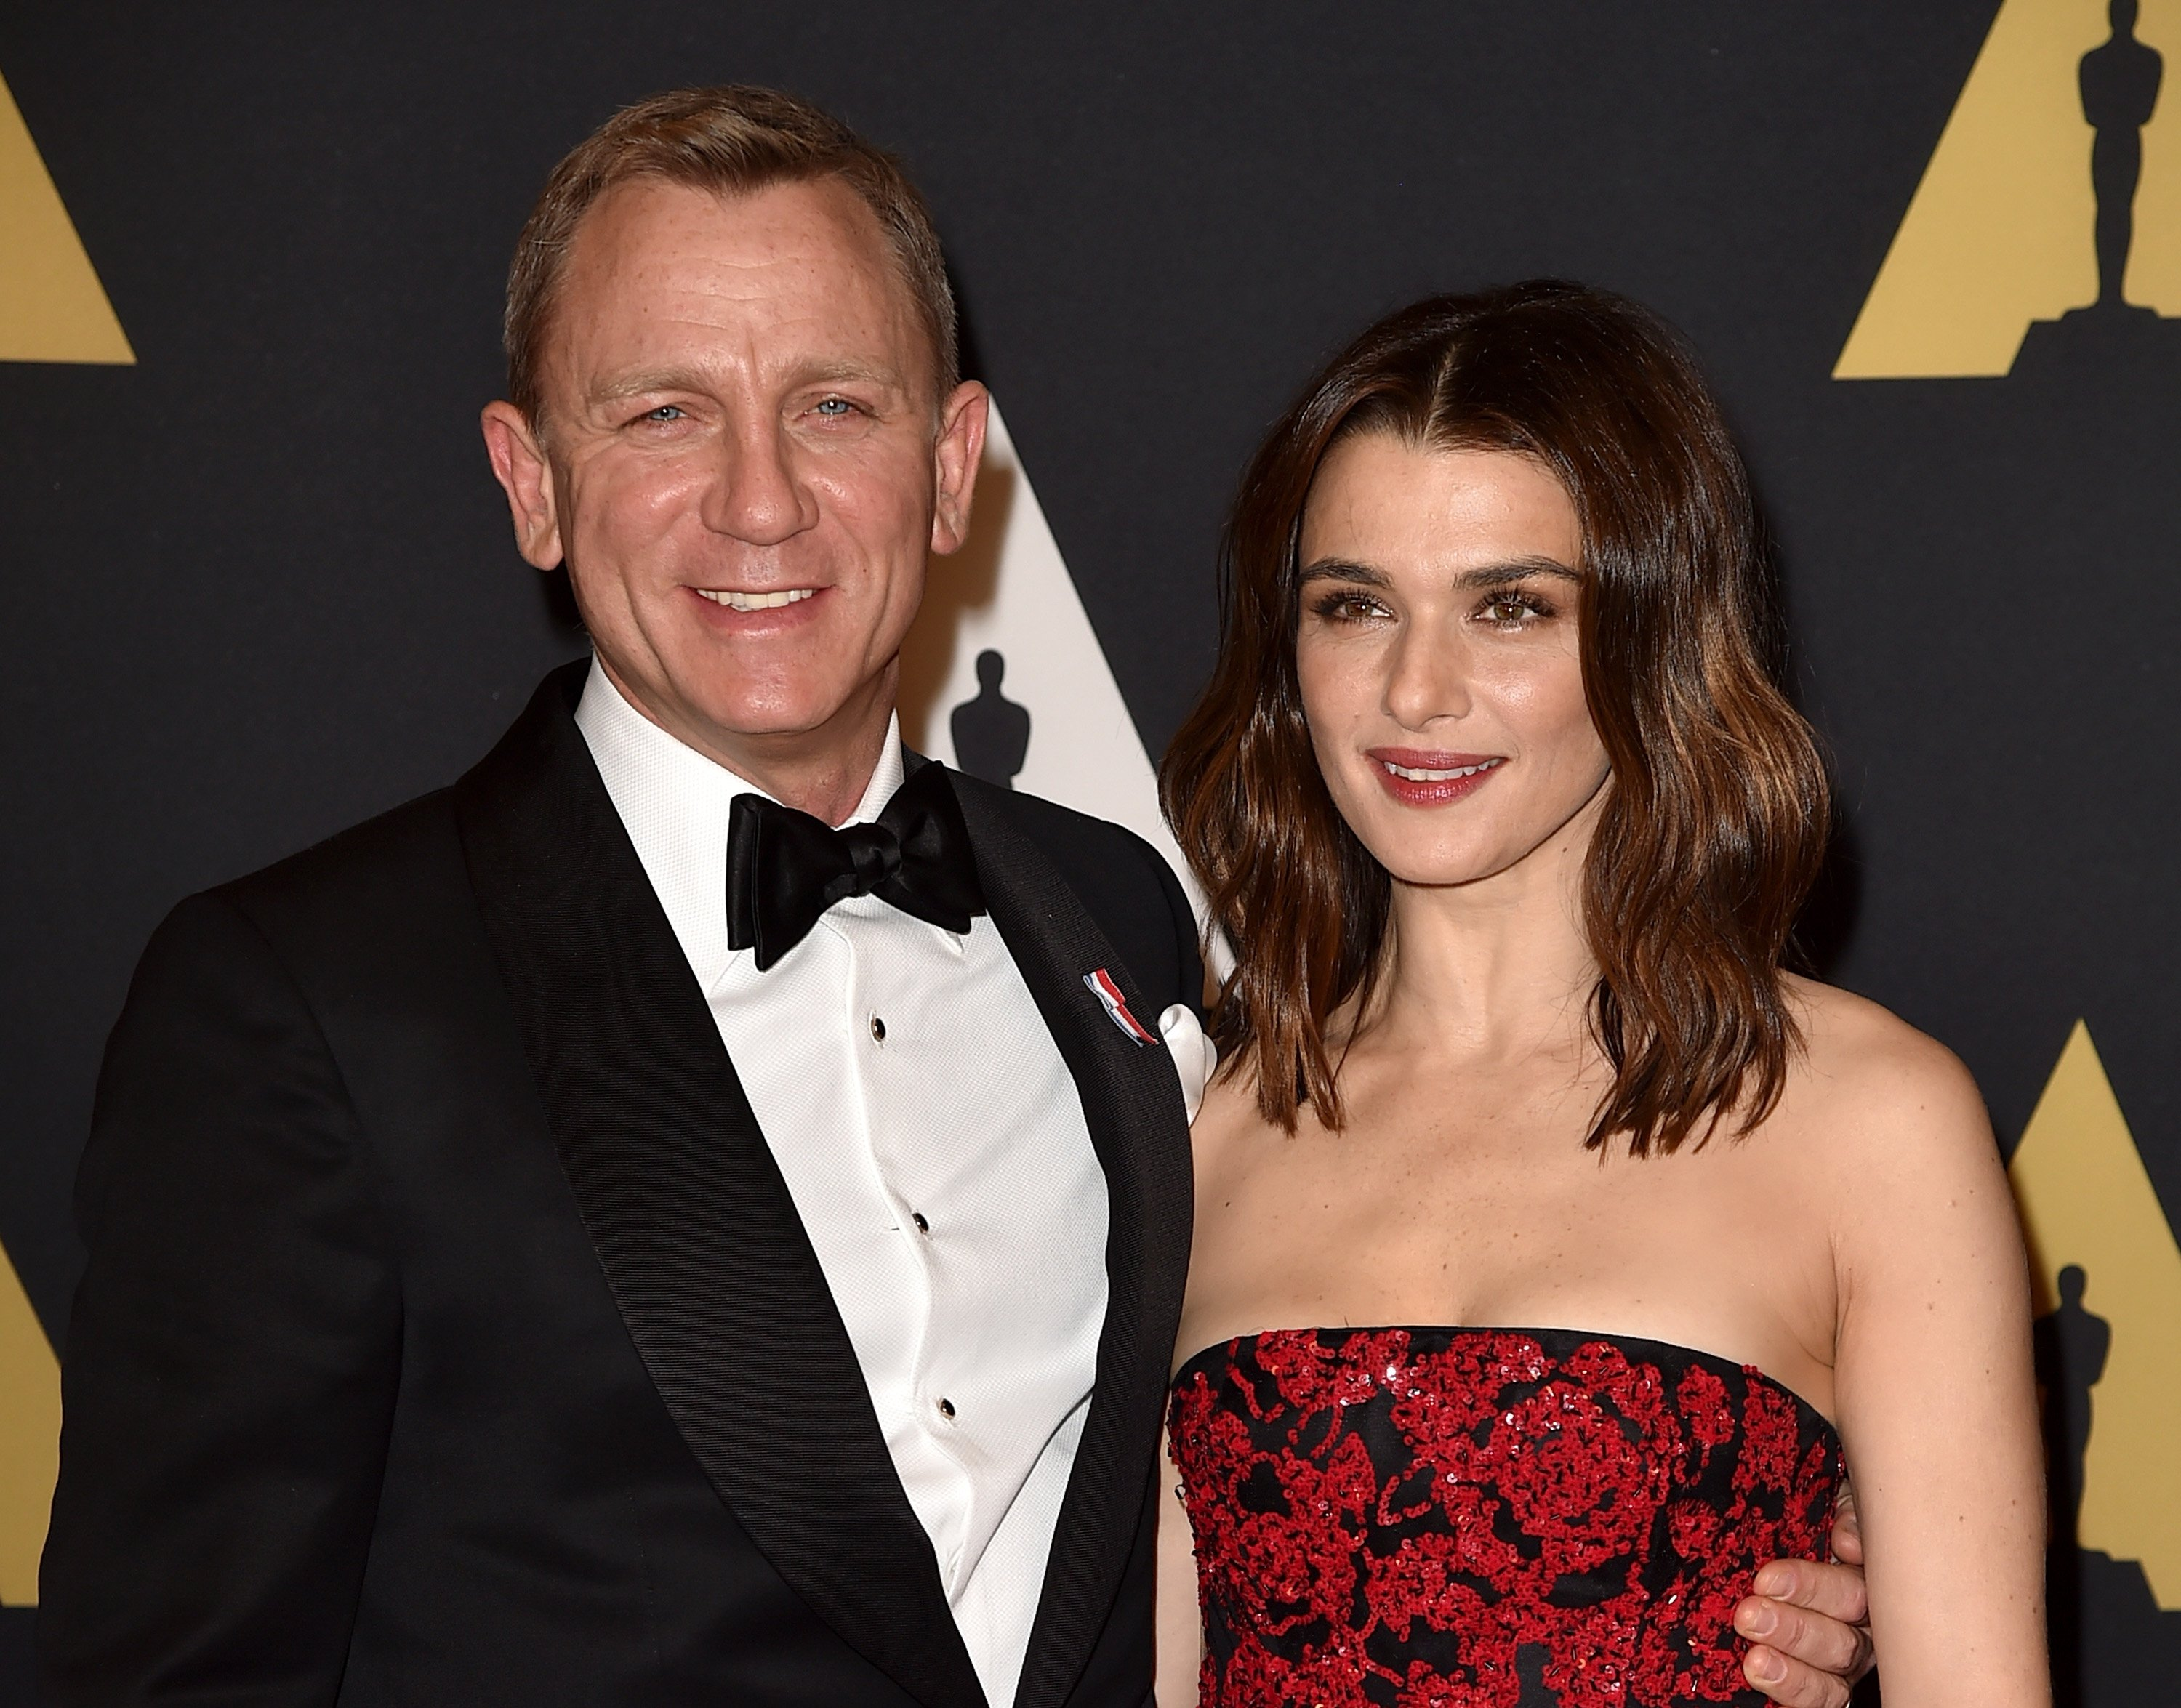 Actors Daniel Craig (L) and Rachel Weisz attend the Academy of Motion Picture Arts and Sciences' 7th annual Governors Awards at The Ray Dolby Ballroom at Hollywood & Highland Center on November 14, 2015 in Hollywood, California.| Source: Getty Images